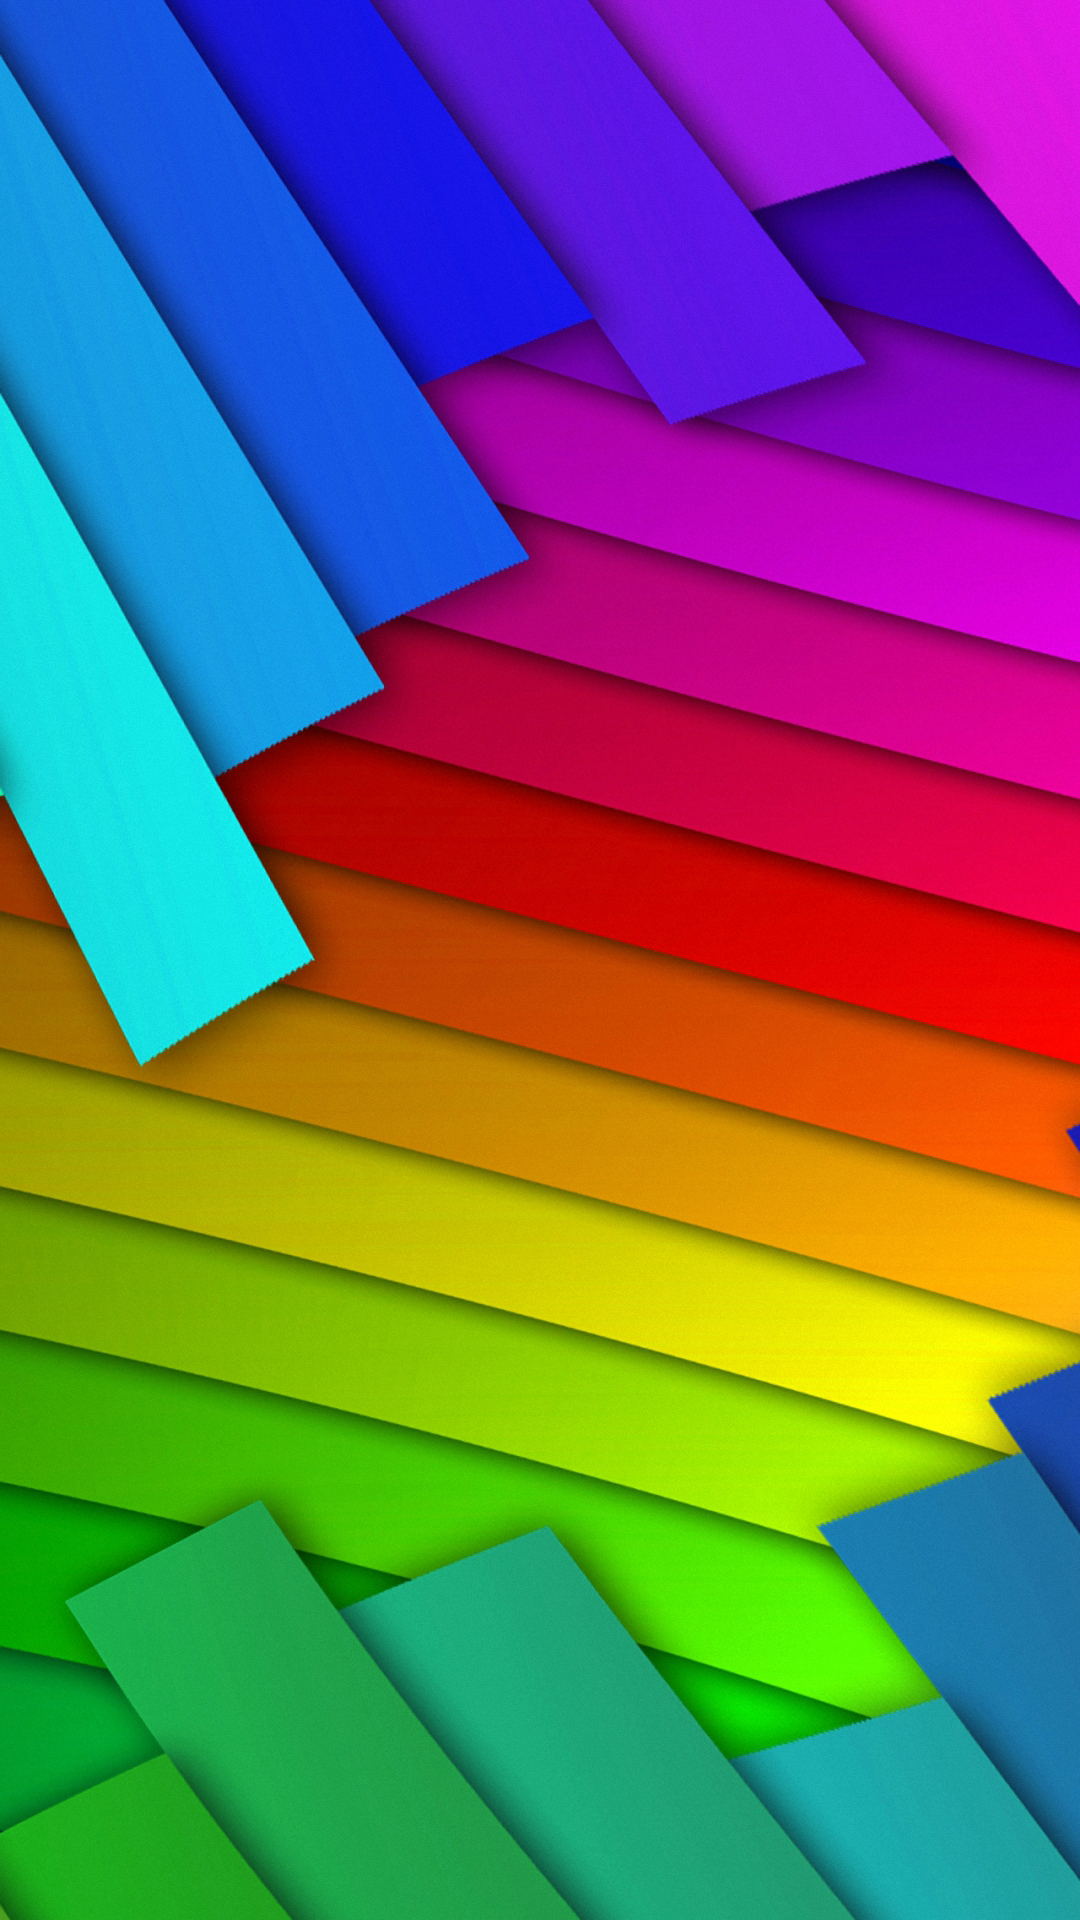 Samsung HTC Colorful Stripes Rainbow Android Wallpaper 1080x1920